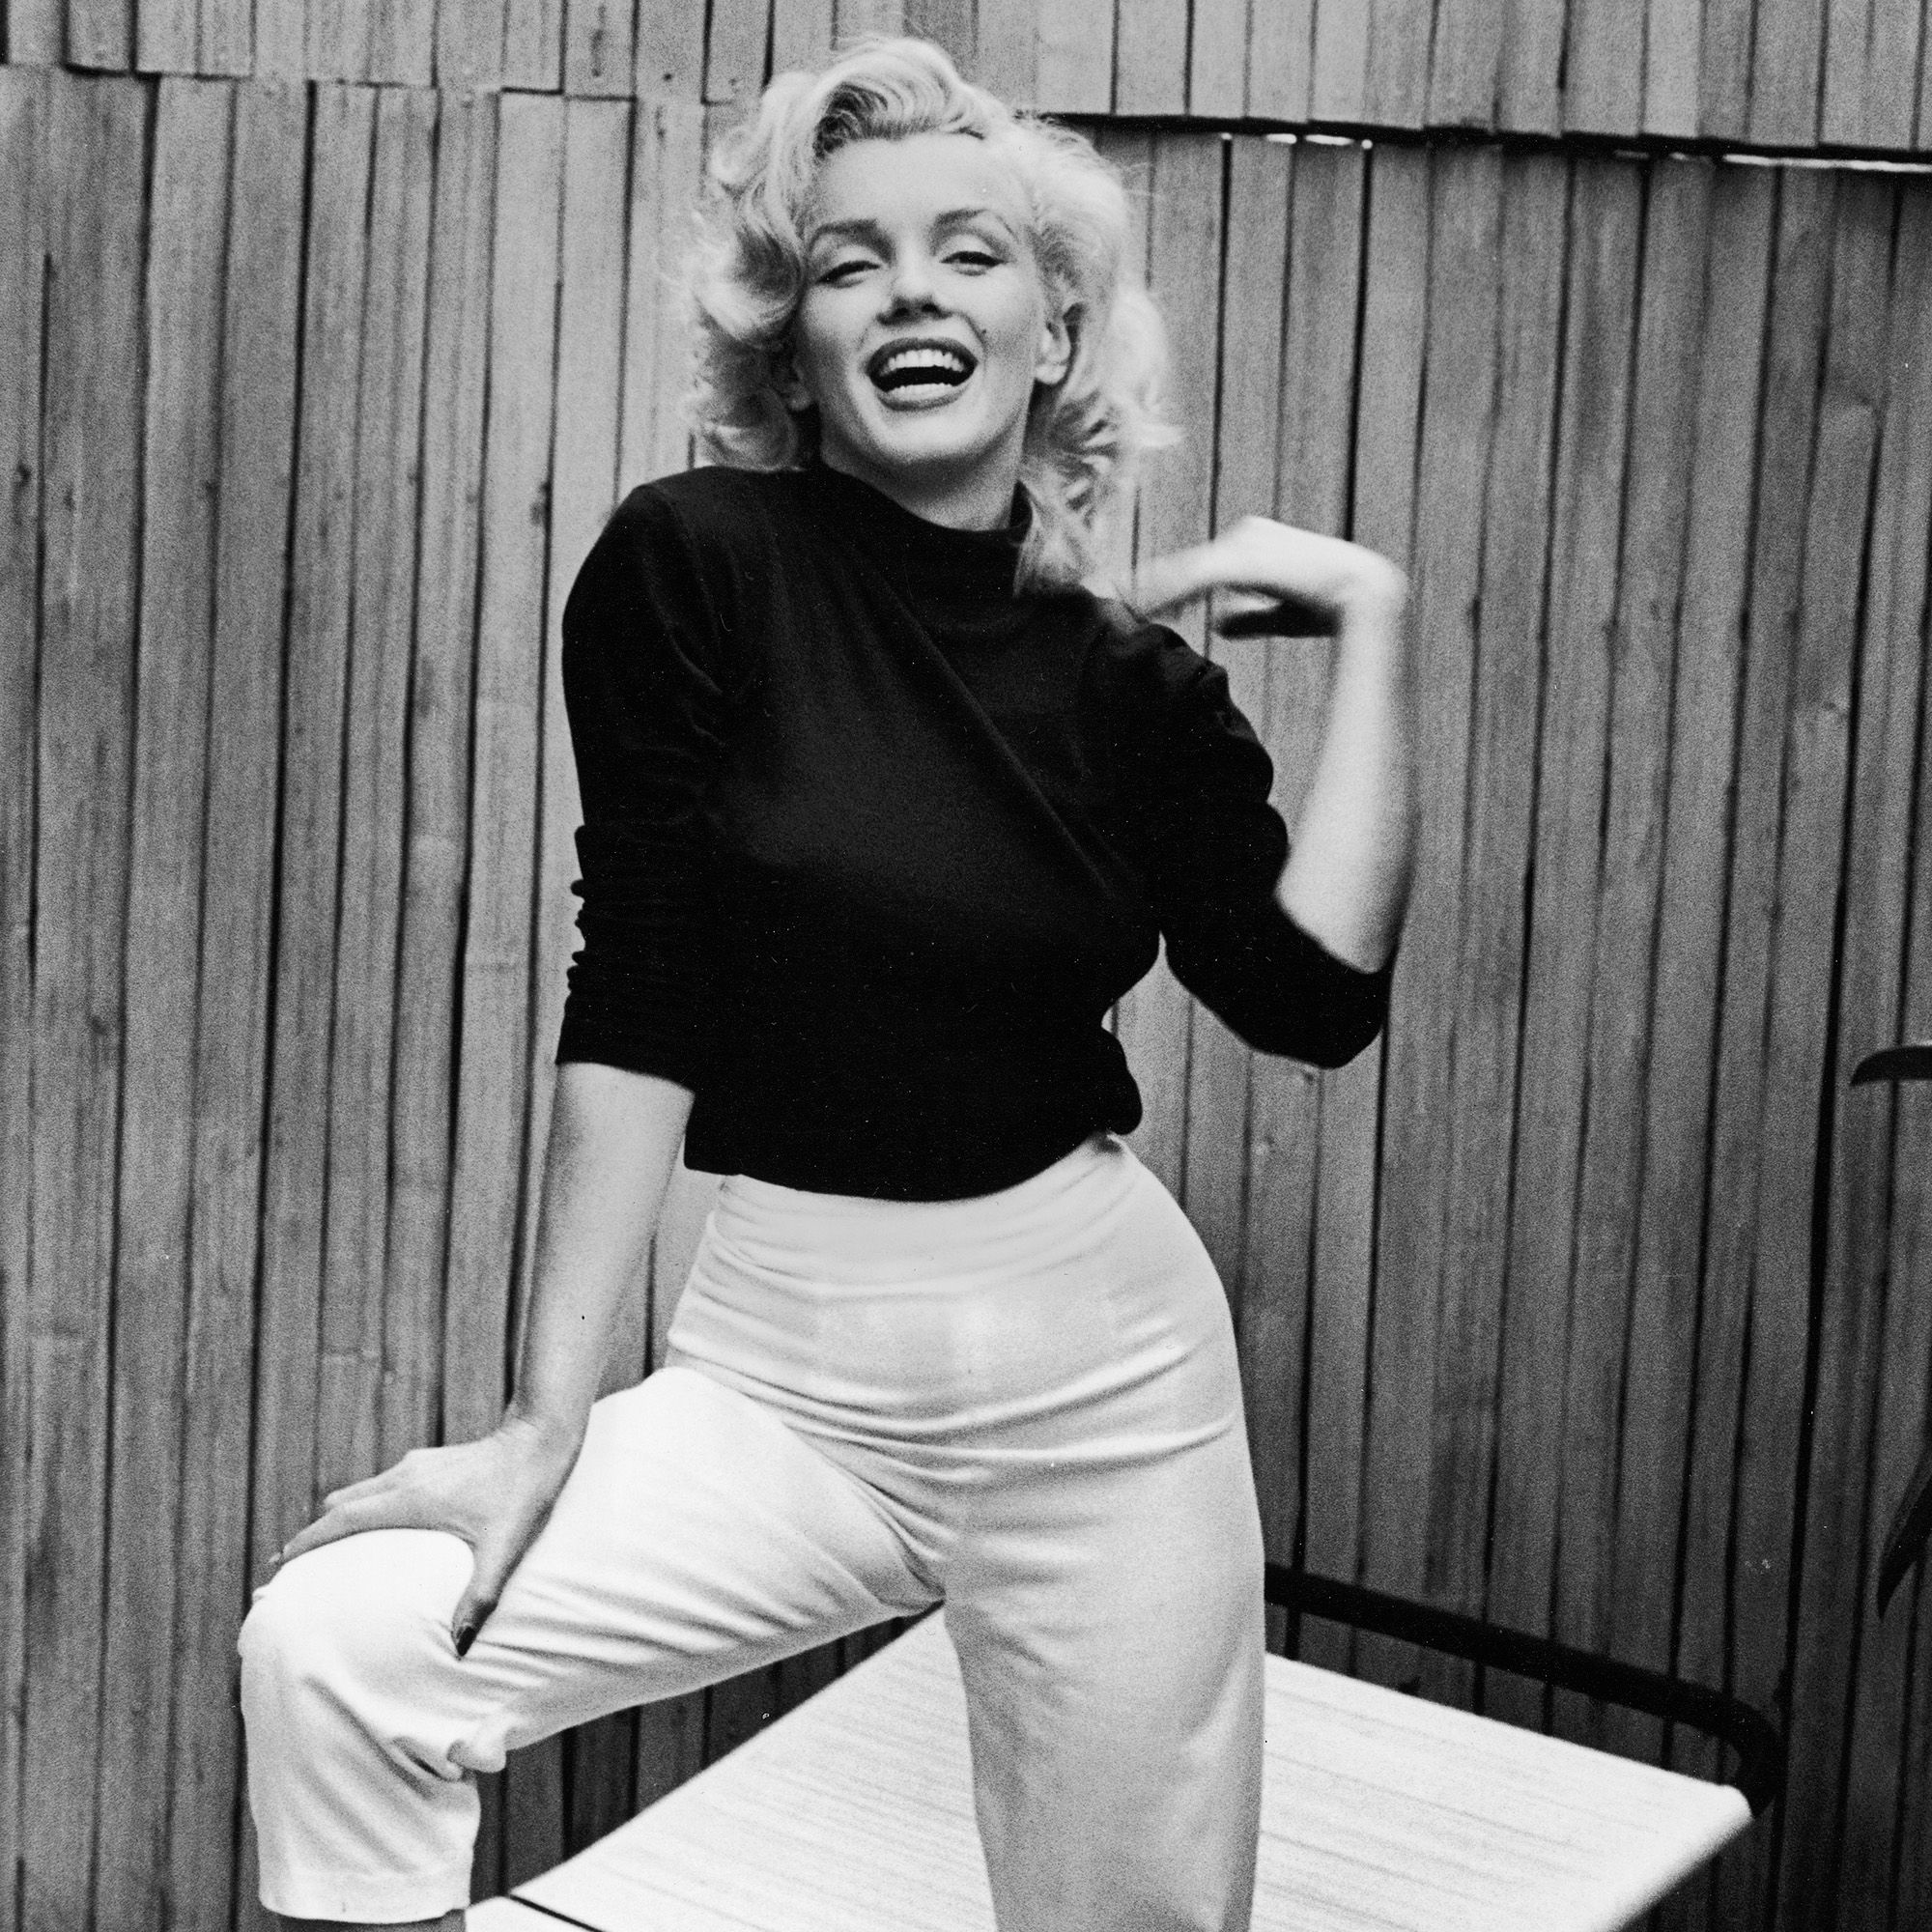 Off duty, Marilyn Monroe's style was composed of easy chic basics like denim, striped tees and button-downs in the 50s. But she's equally remembered for her slip dresses, blonde bob and sultry red lip.